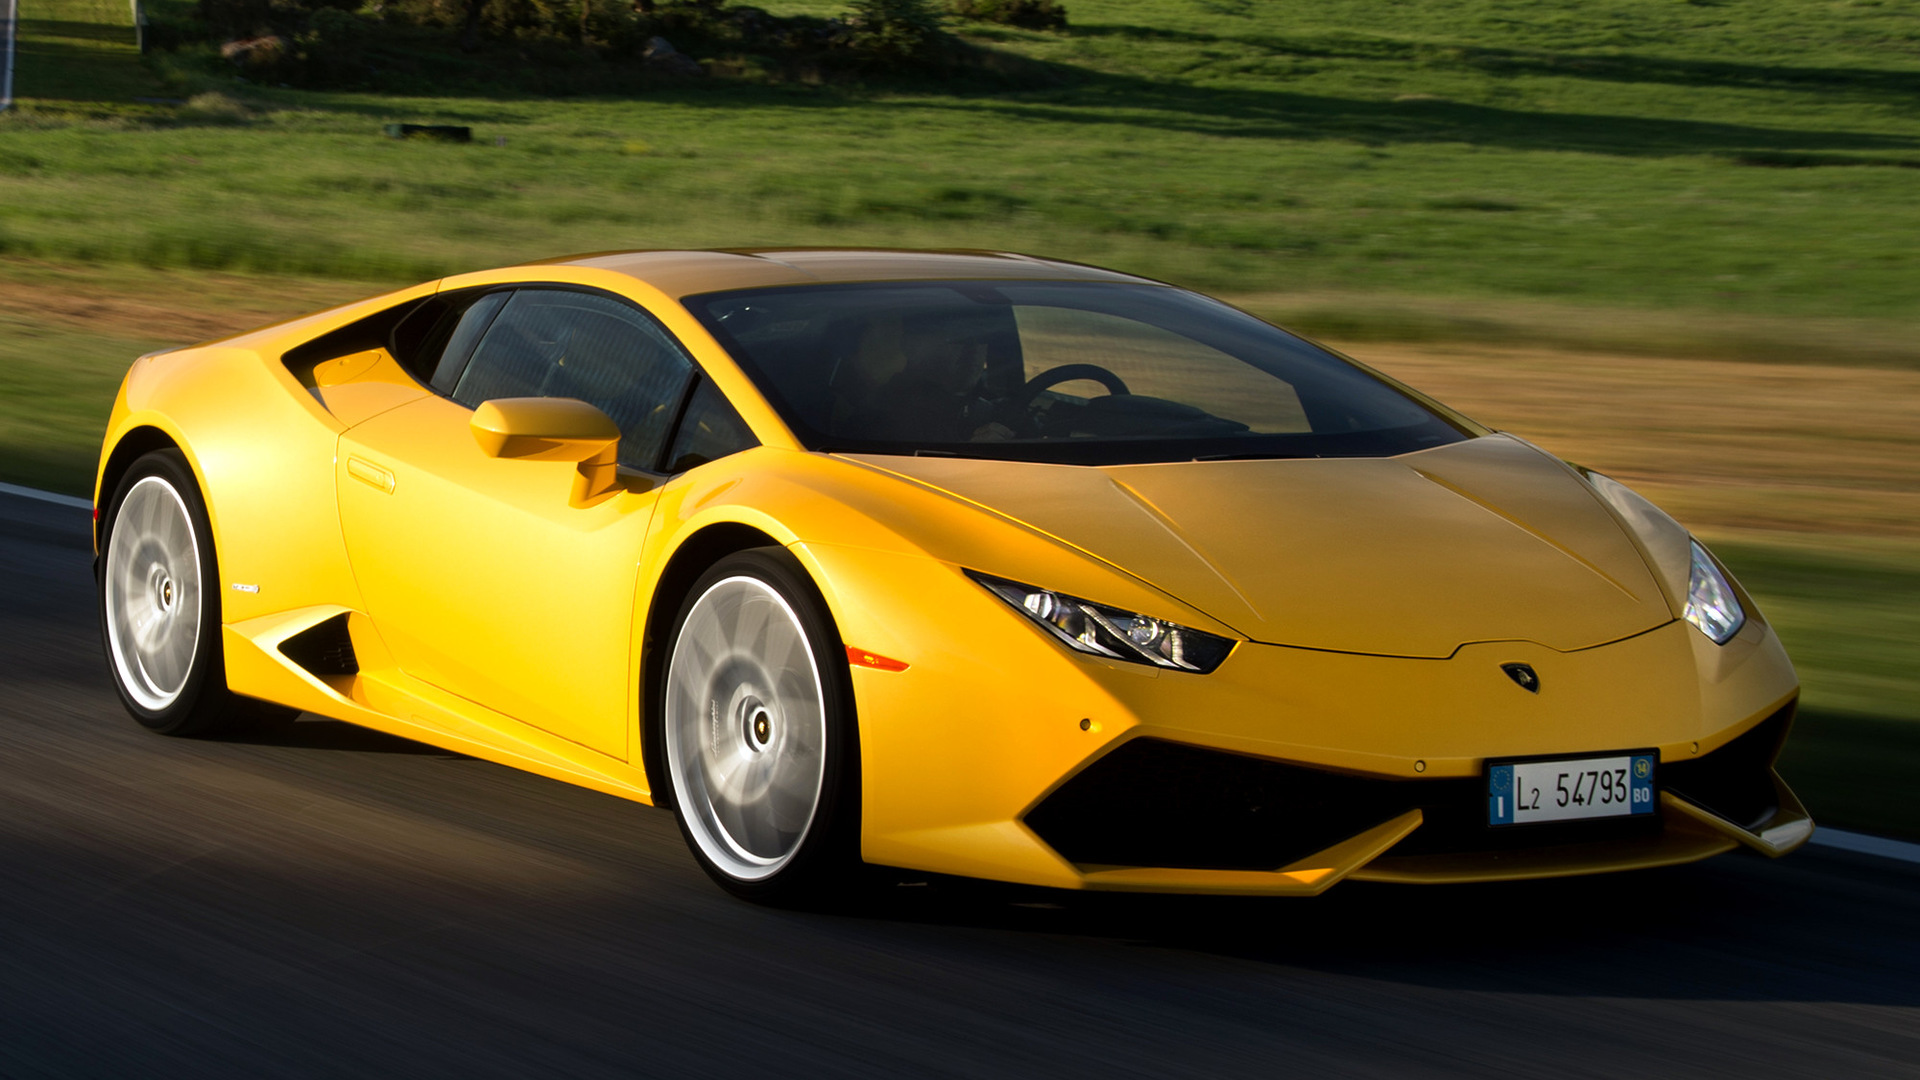 Lamborghini Huracan Lp 610 4 2014 Us Wallpapers And Hd HD Wallpapers Download free images and photos [musssic.tk]